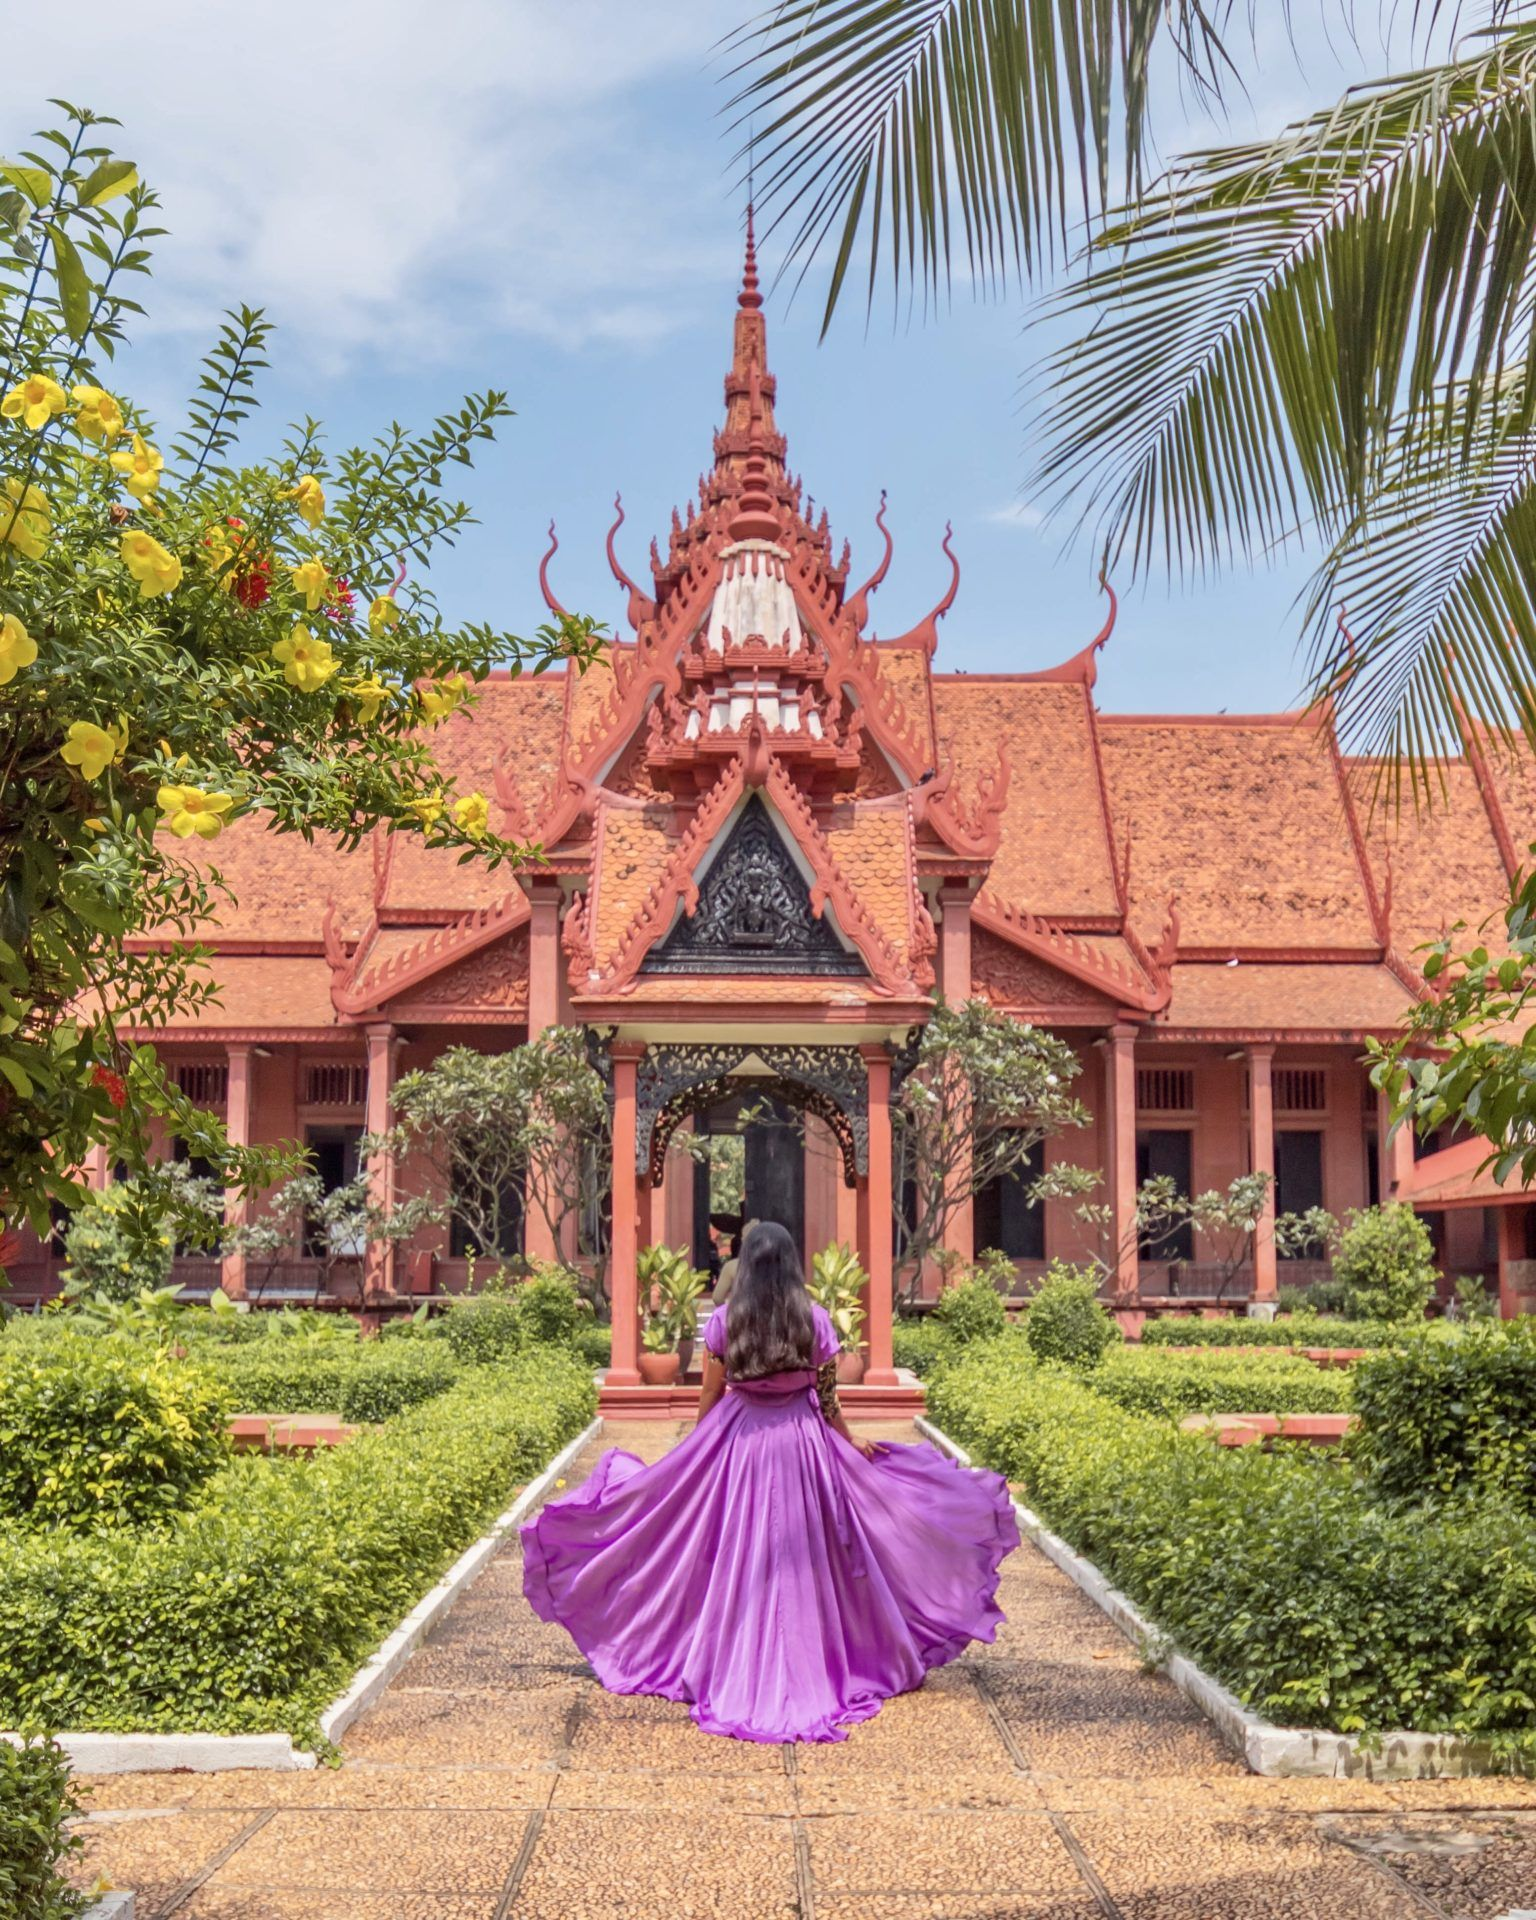 Find out everything you need to know about planning a trip to Cambodia #cambodia #angkorwat #phnompenh #angkorwatcambodia | things to do in Cambodia | is Cambodia safe | Best Places to visit in Cambodia | information about Cambodia | Cambodia travel | Ultimate travel guide to Cambodia | Ultimate guide to Cambodia